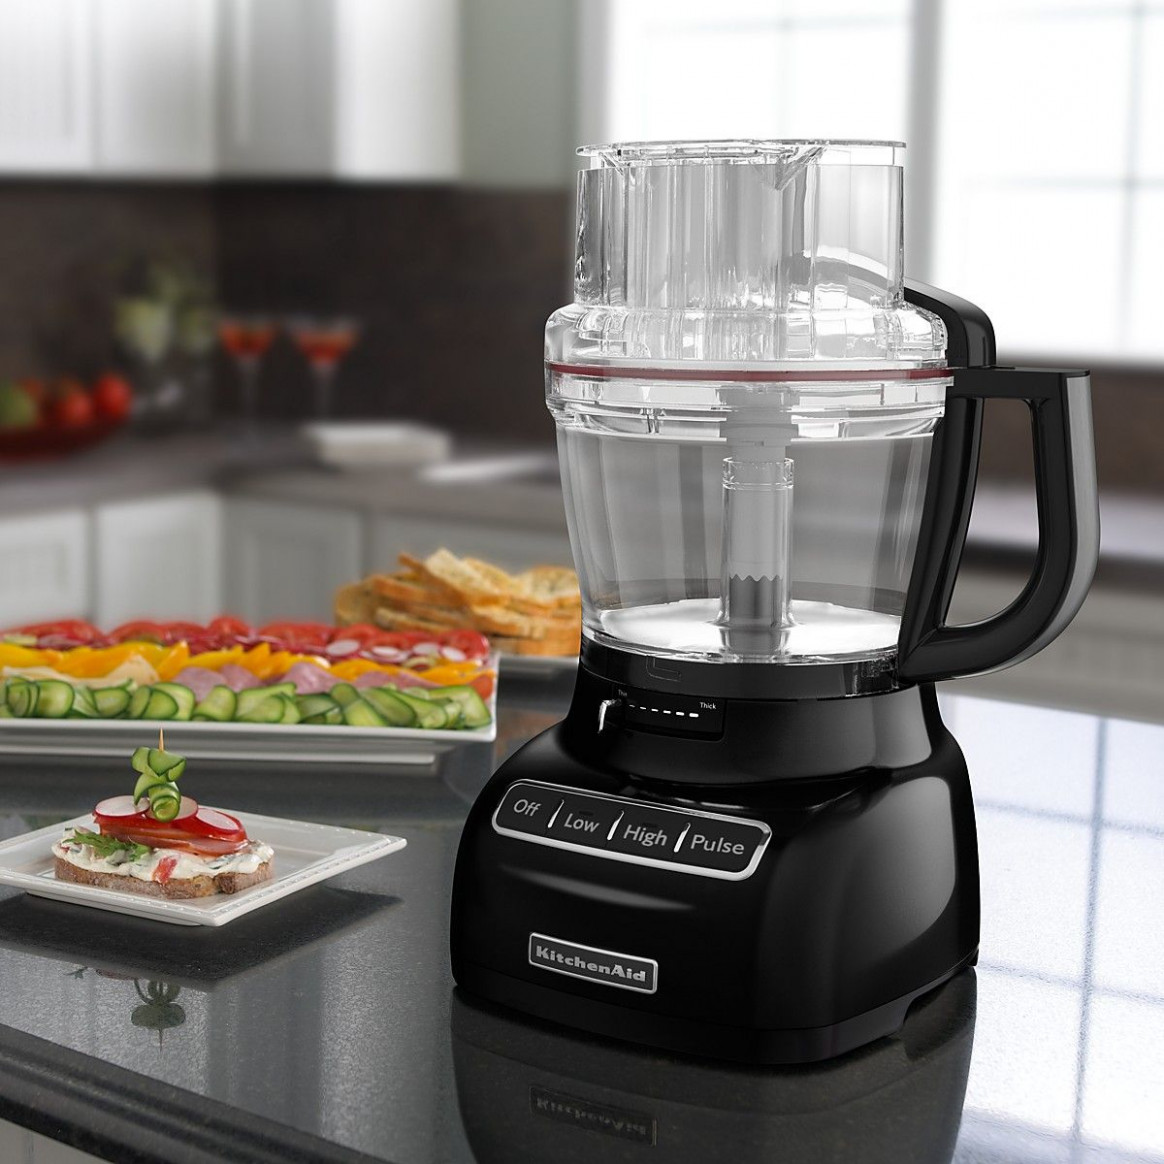 Paleo #PrimalPalate - ENTER TO WIN this KitchenAid 11 Cup ..